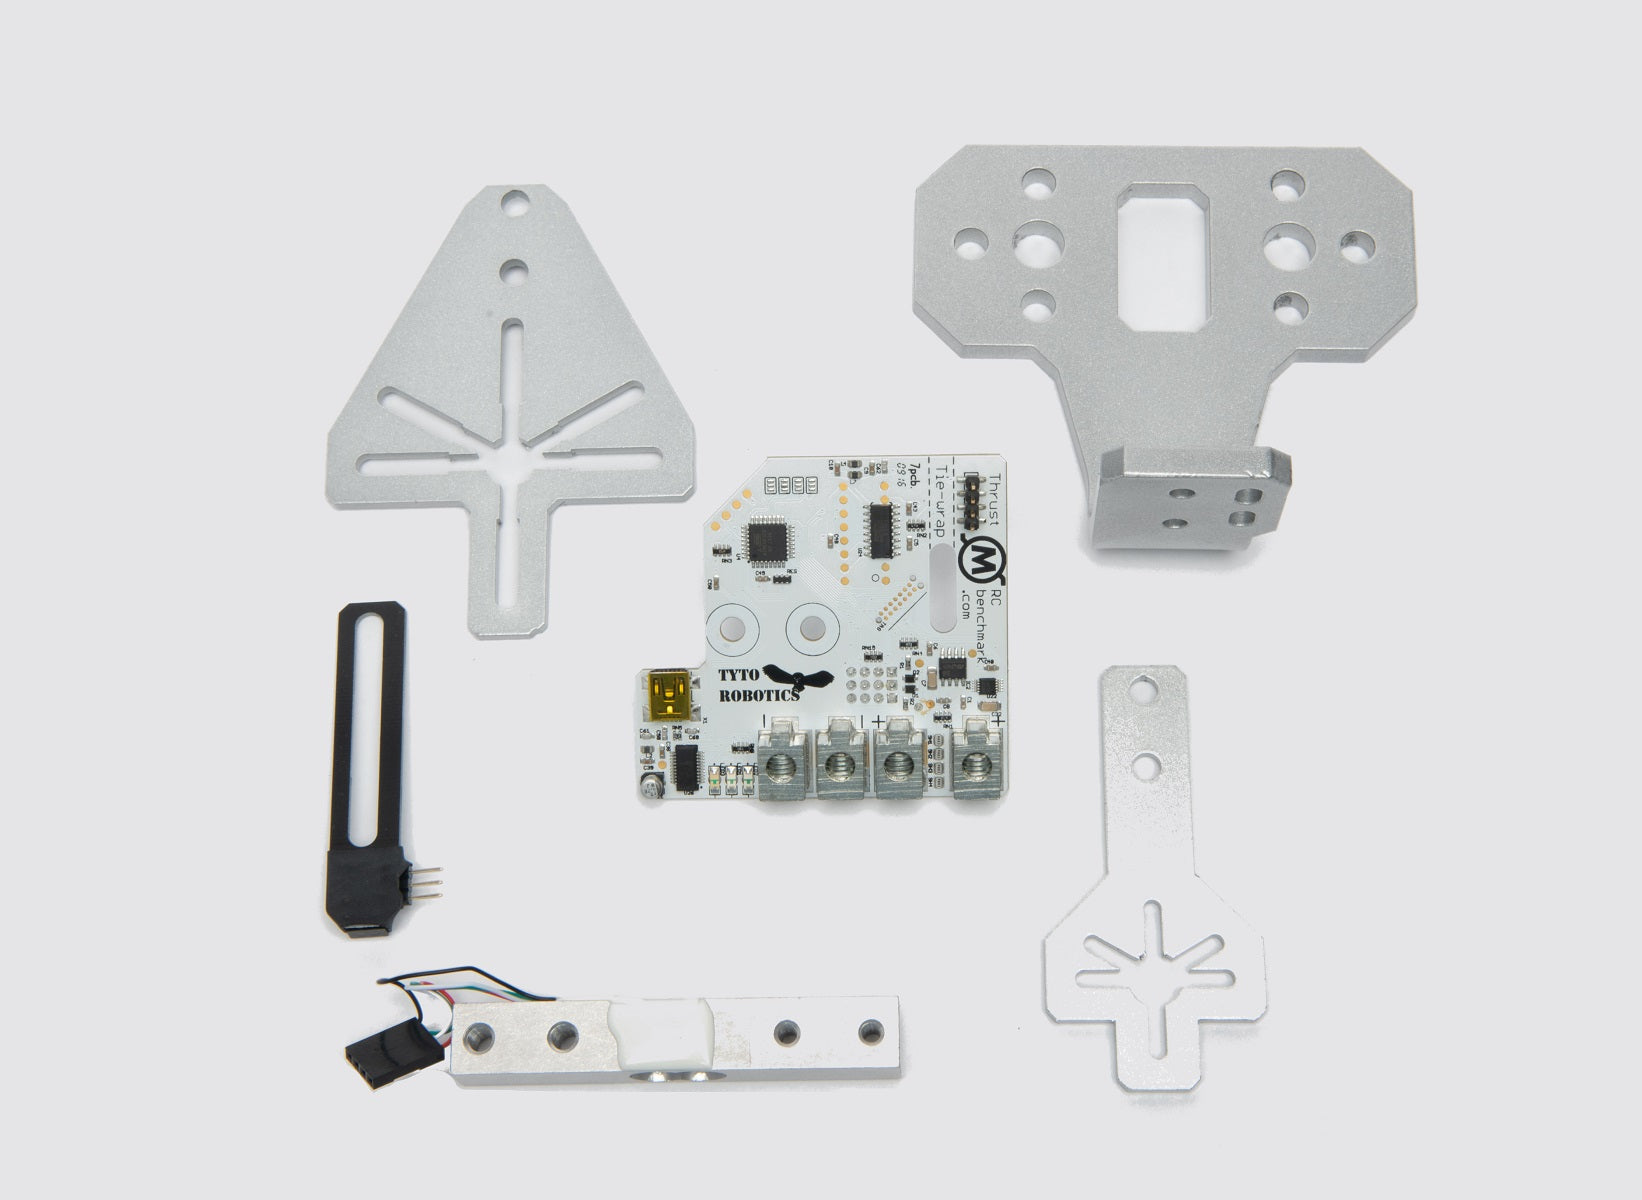 Series 1520 components